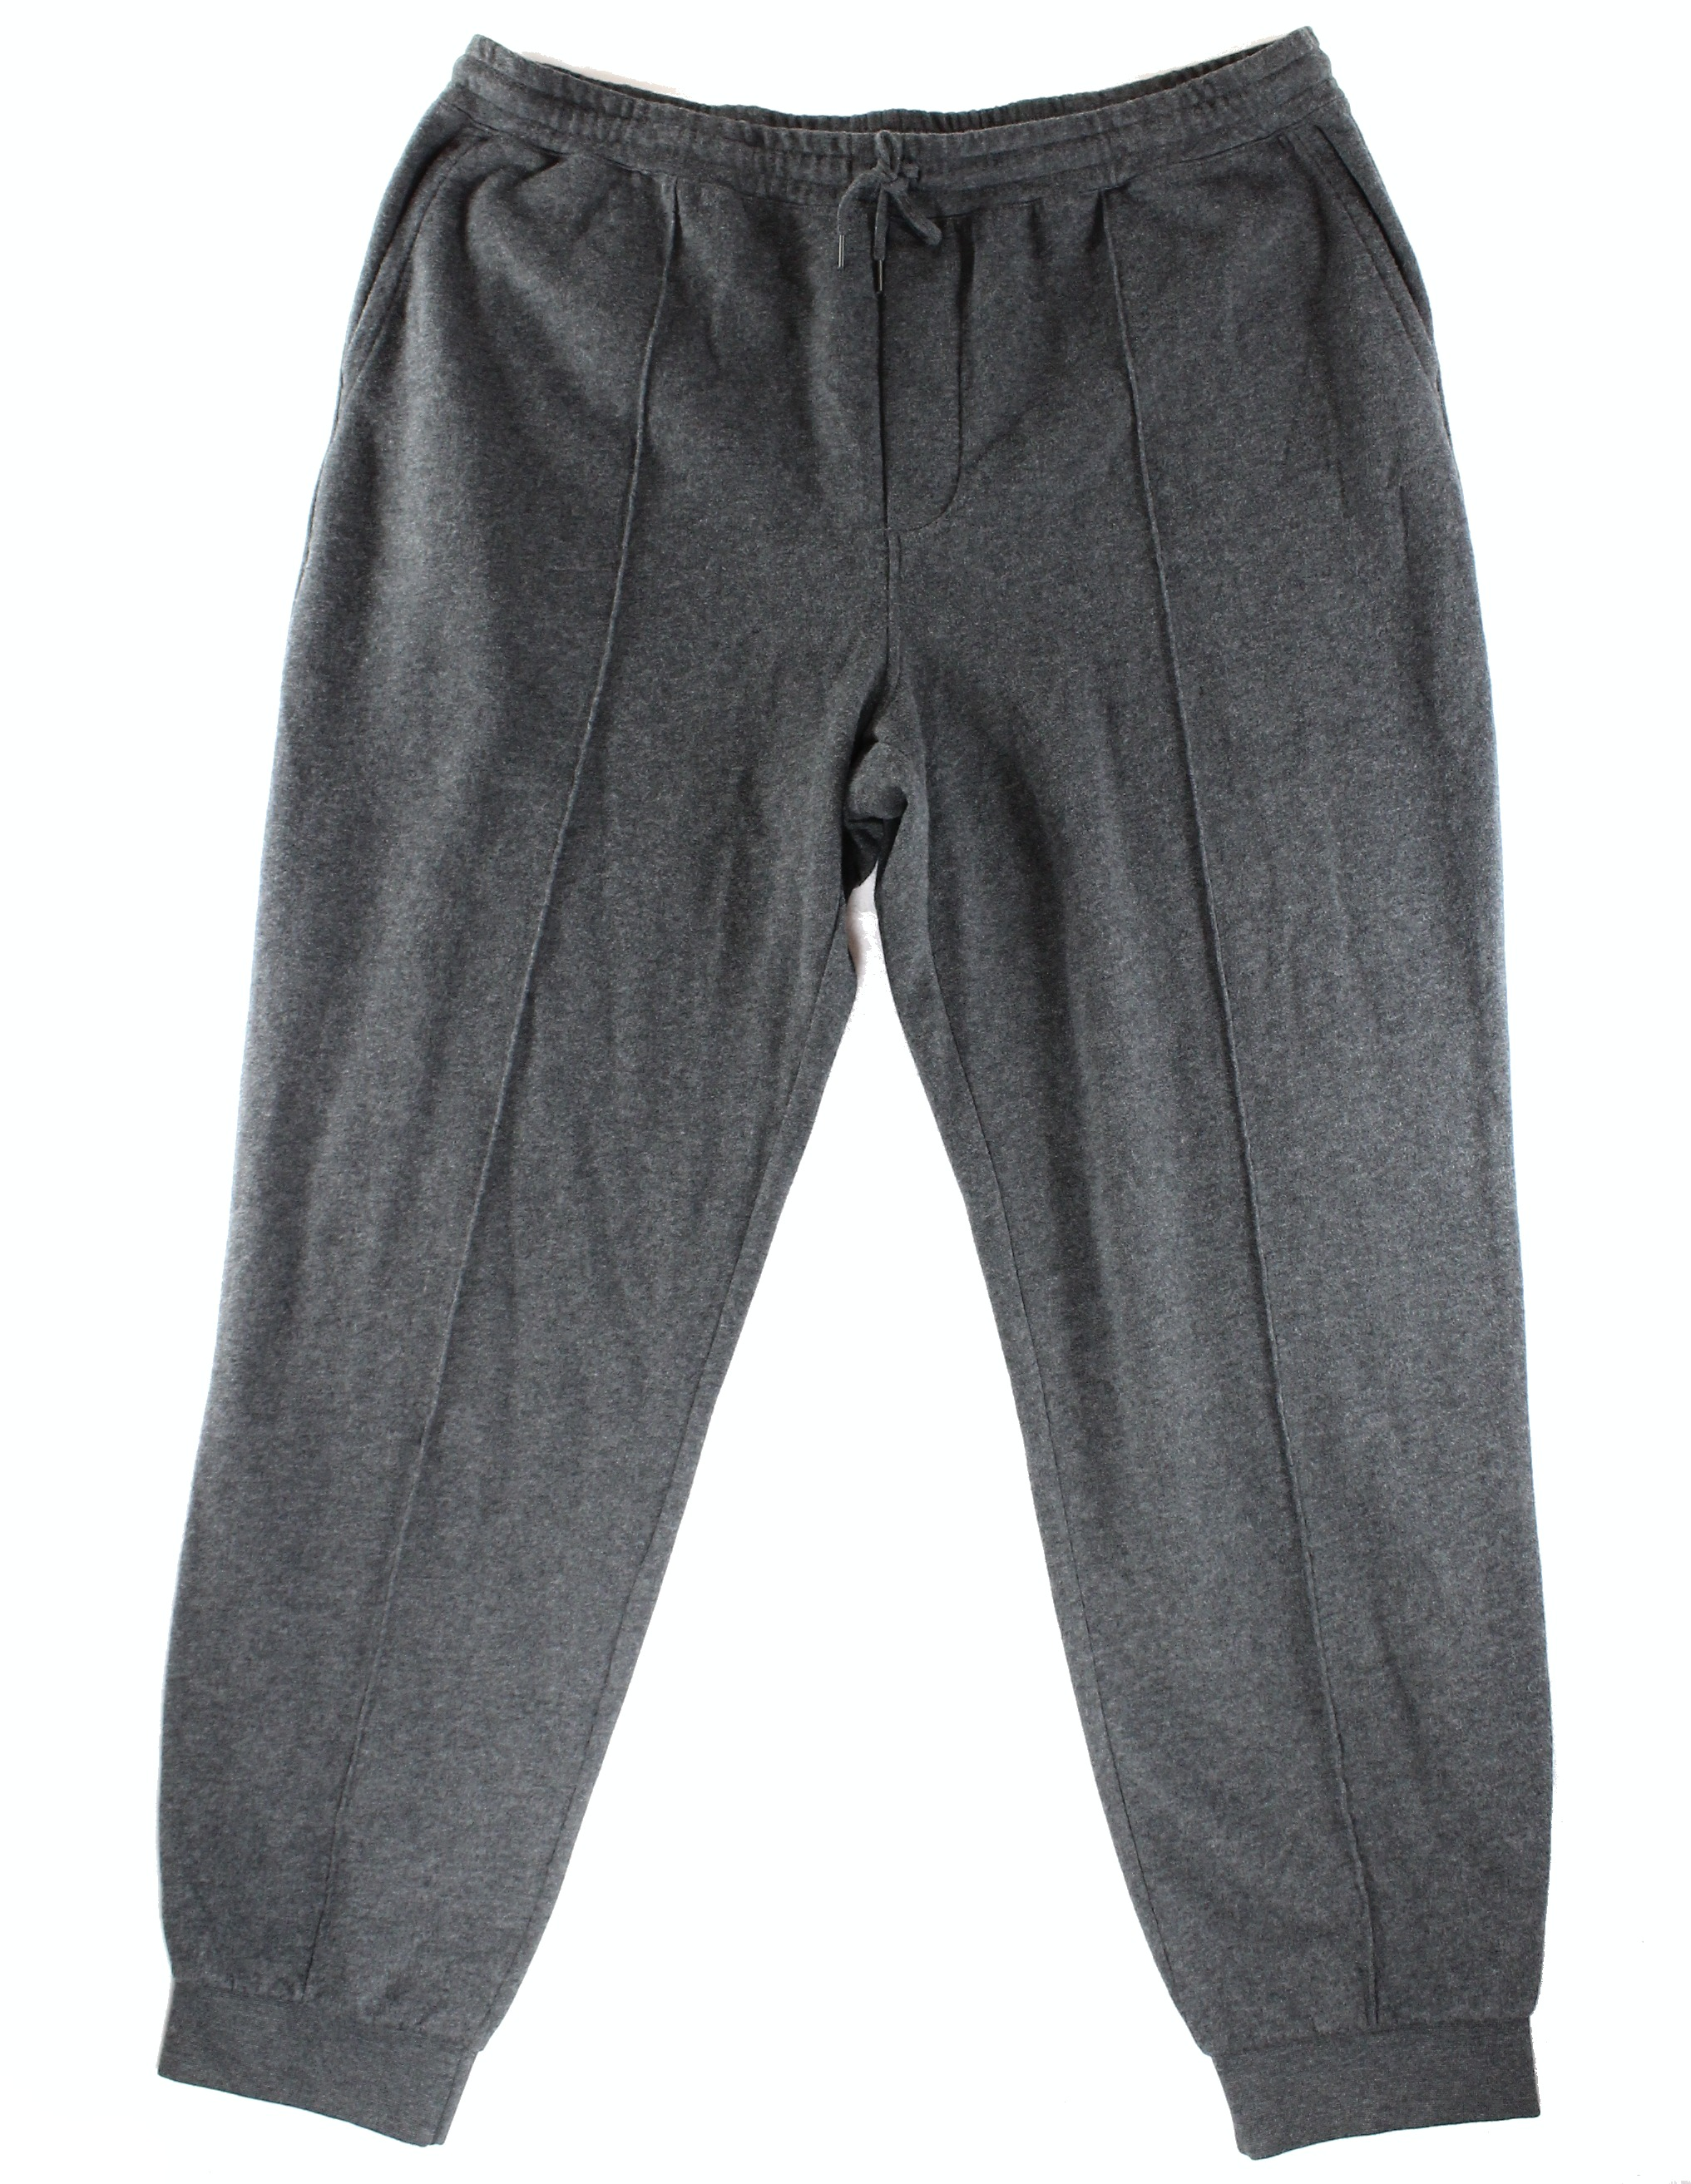 Polo Ralph Lauren NEW Charcoal Gray Mens Size Big 3X Jogger Pants